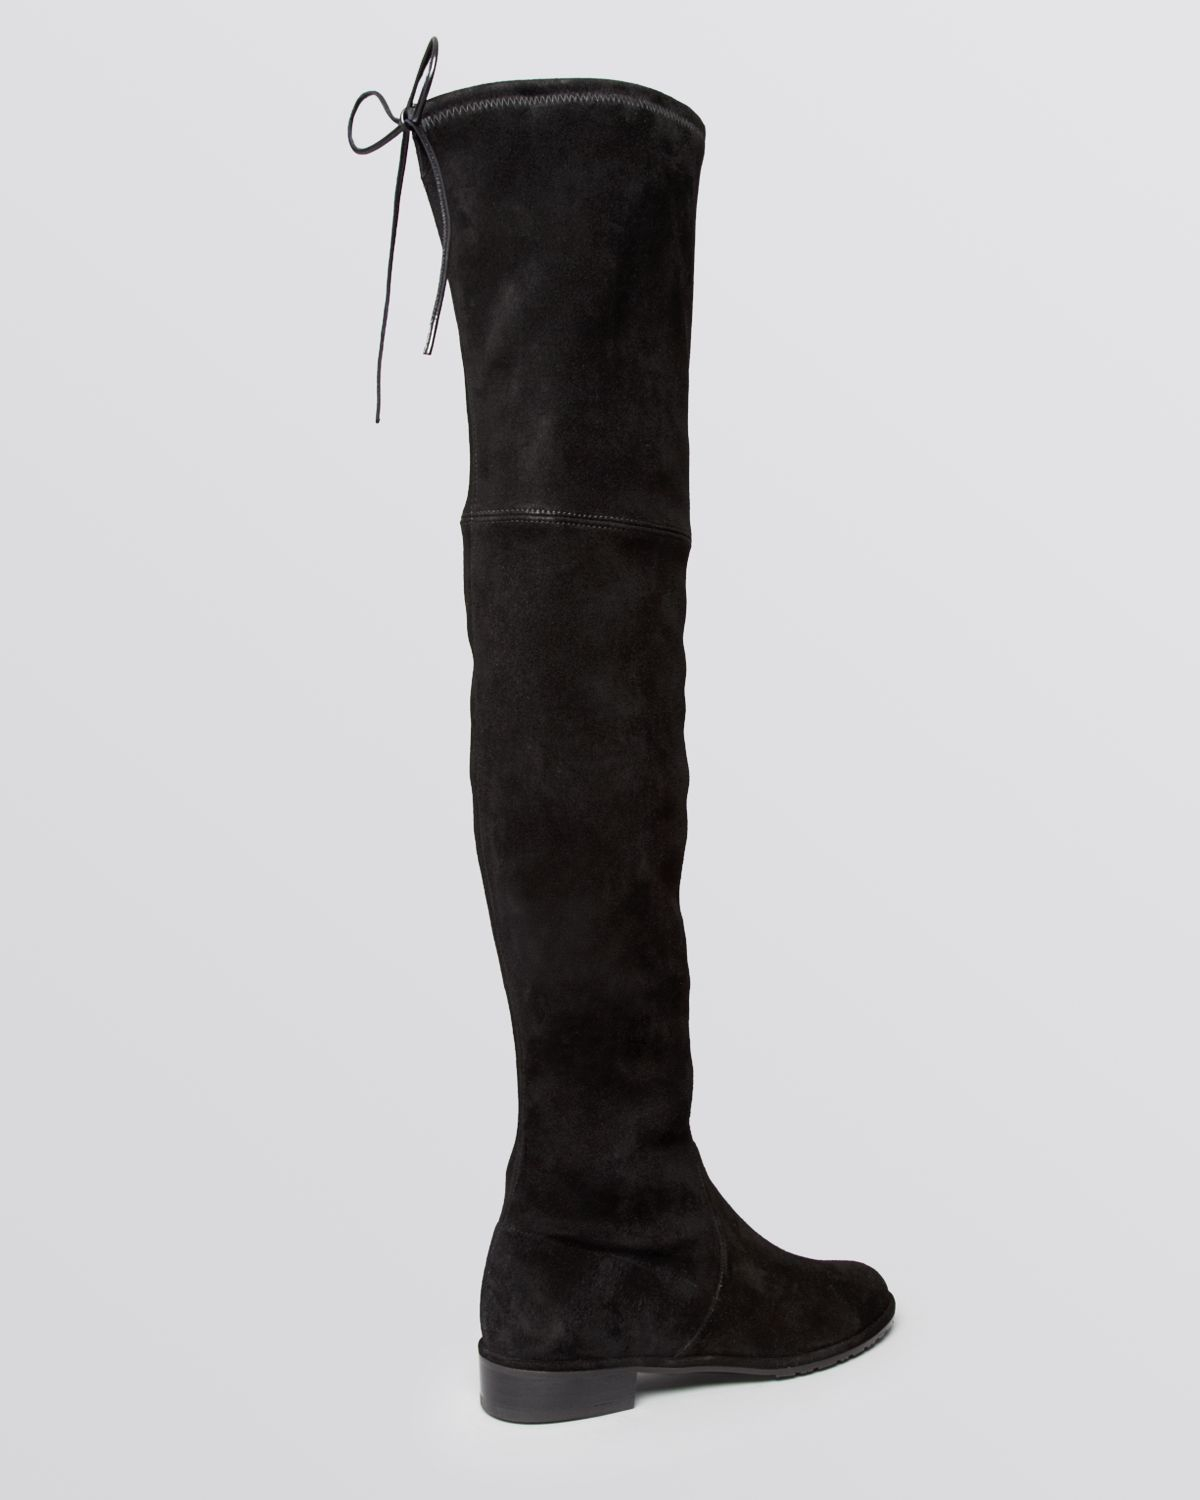 Stuart Weitzman Lowjack Leather And Neoprene Knee High